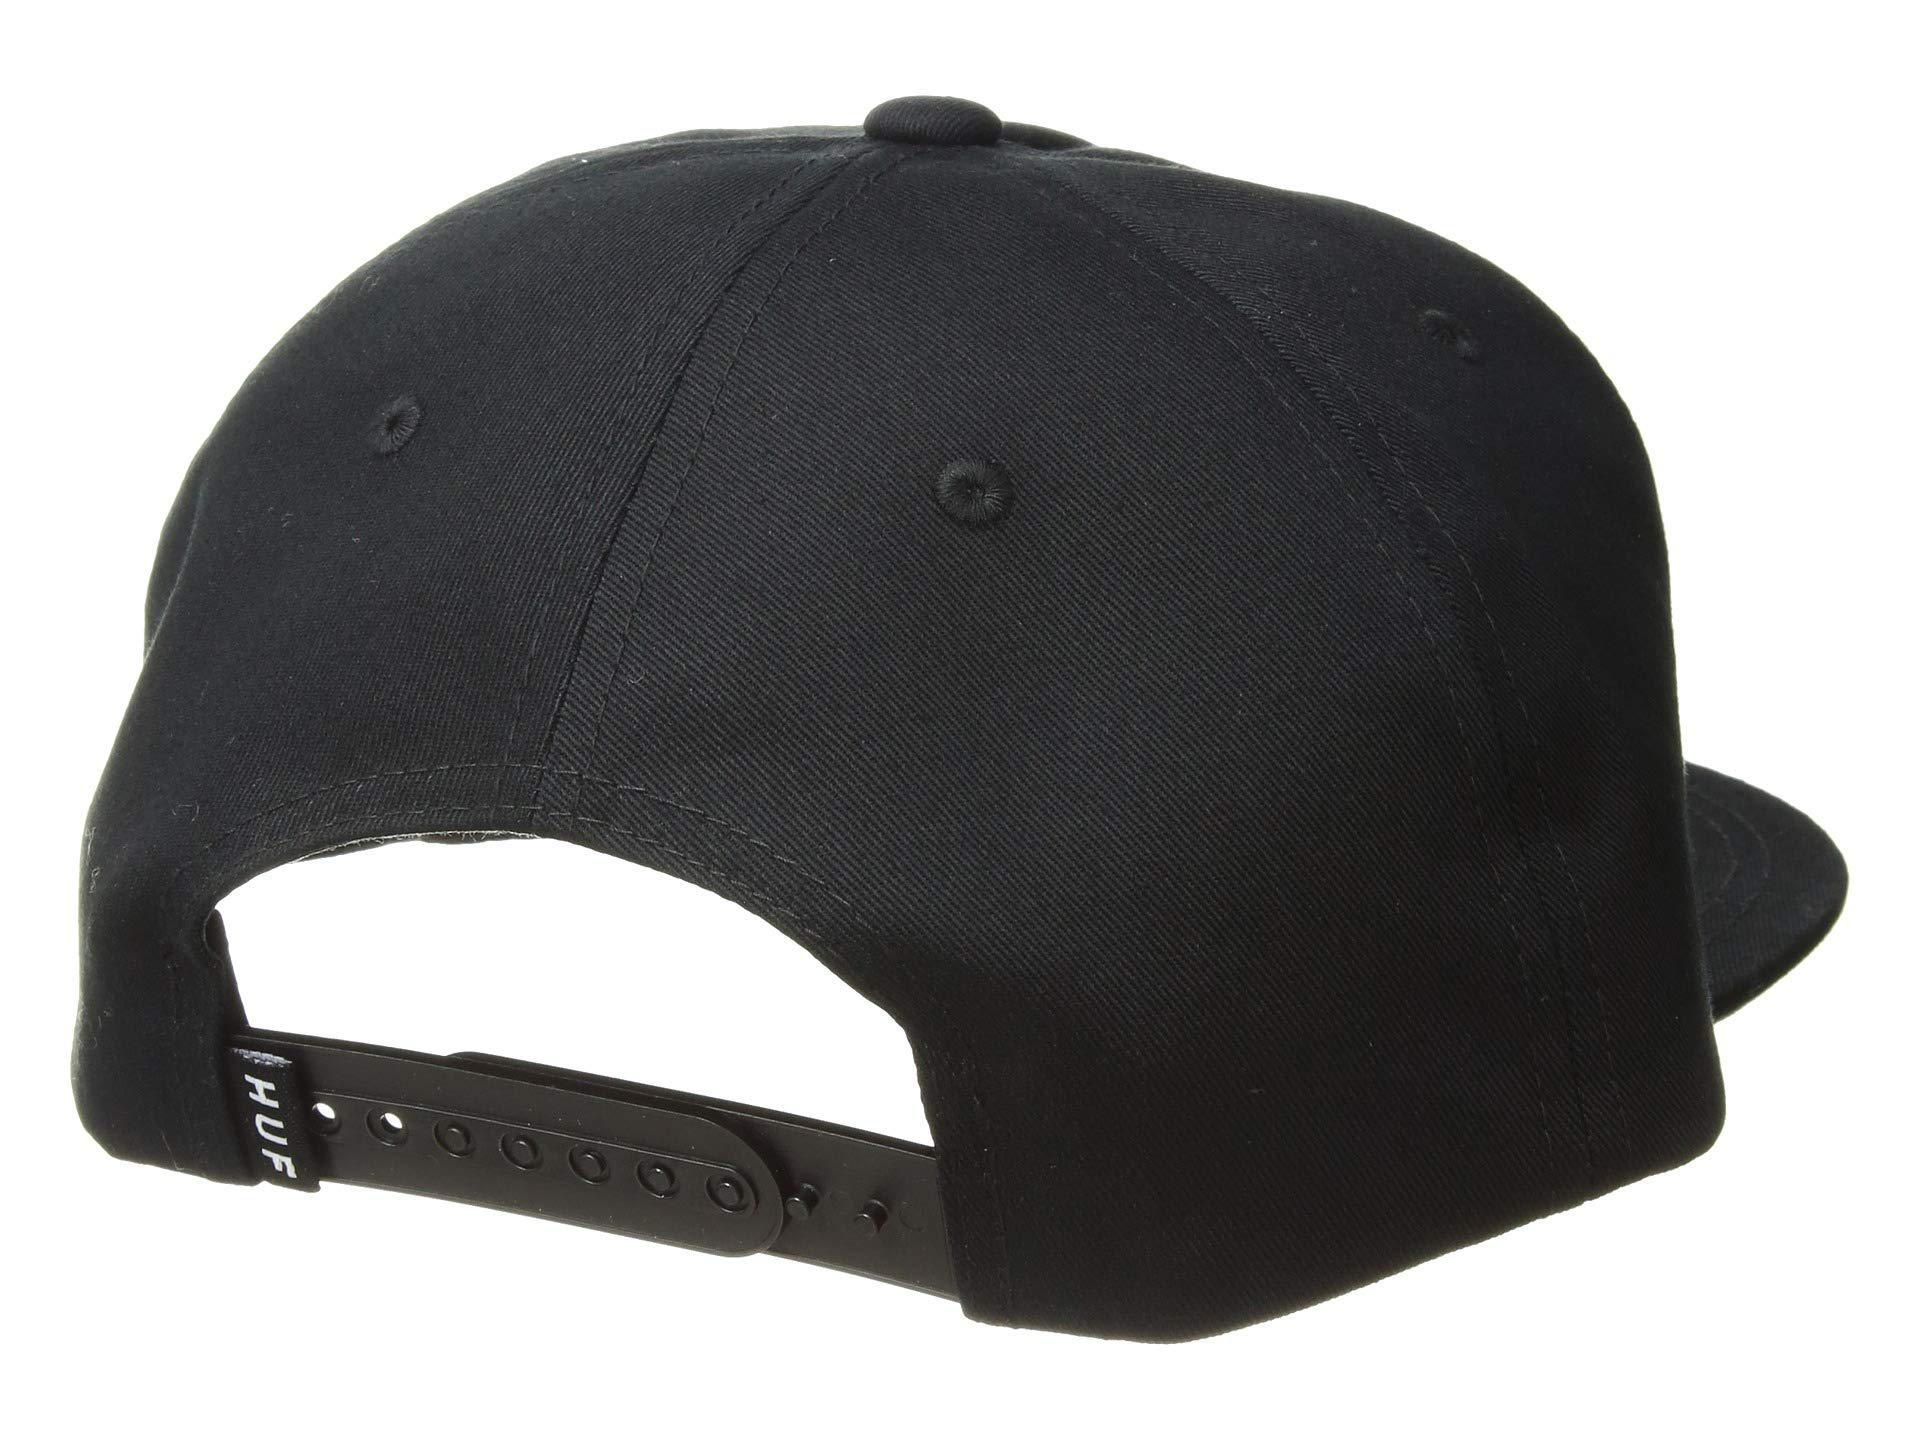 c6673cf4b16bd Lyst - Huf Corps Snapback Hat (black) Caps in Black for Men